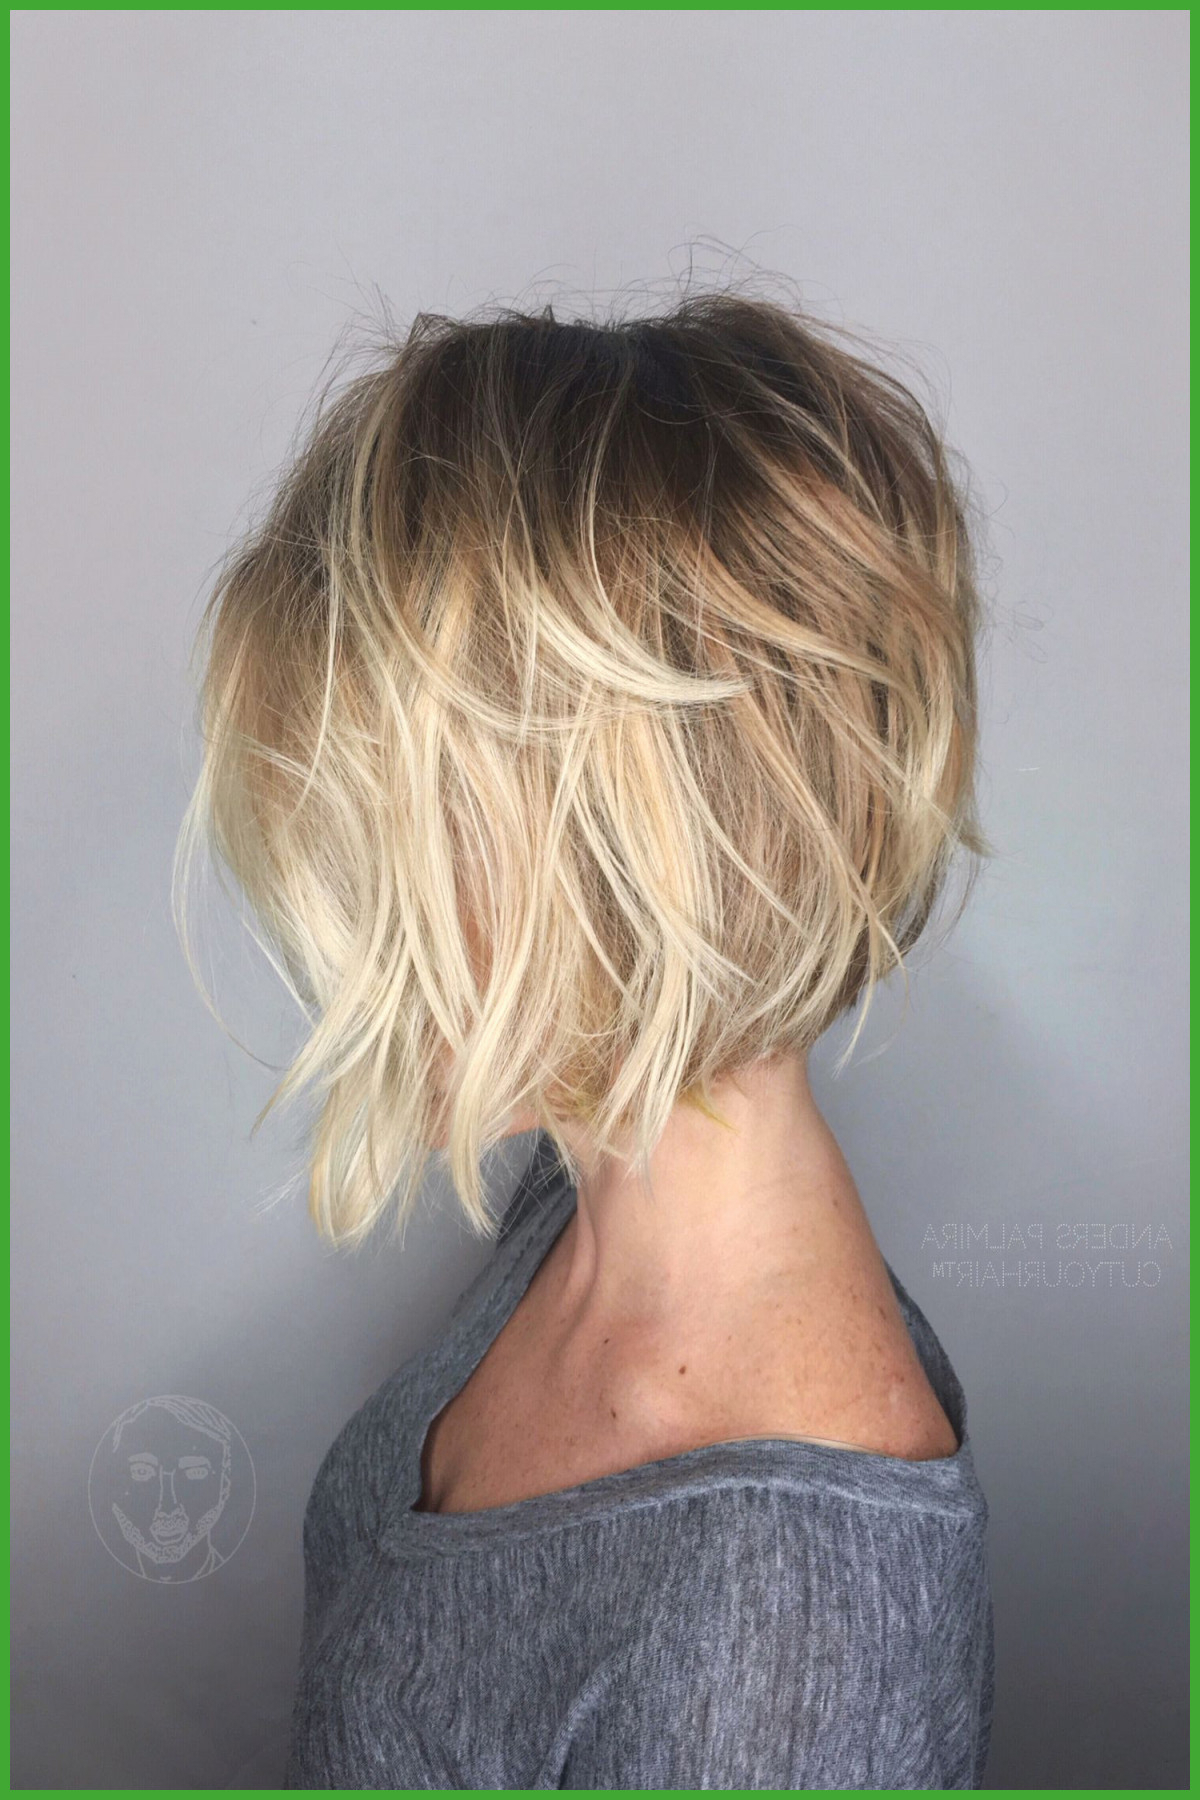 Most Recently Released Drew Barrymore Medium Haircuts With New Drew Barrymore Short Hairstyles – Uternity (View 18 of 20)